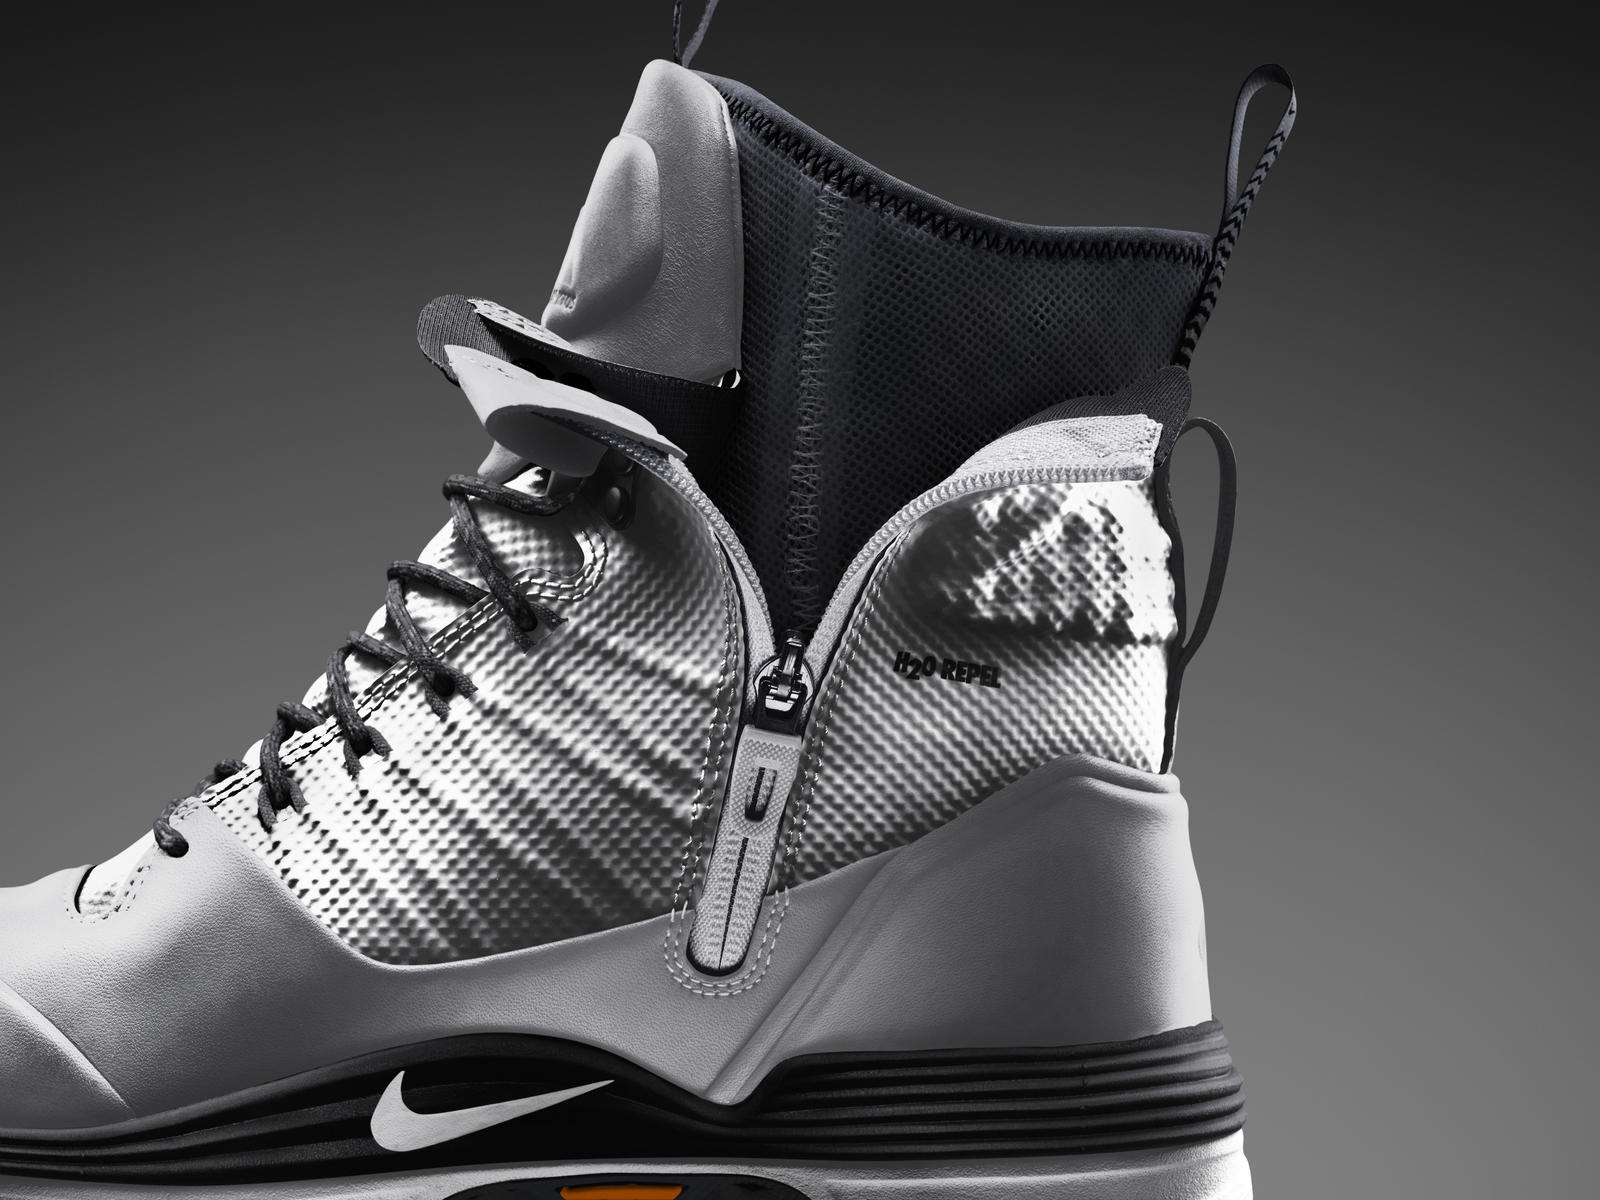 2014 NFL Nike Silver Speed Collection Unveiled for Super Bowl XLVIII  Nike News